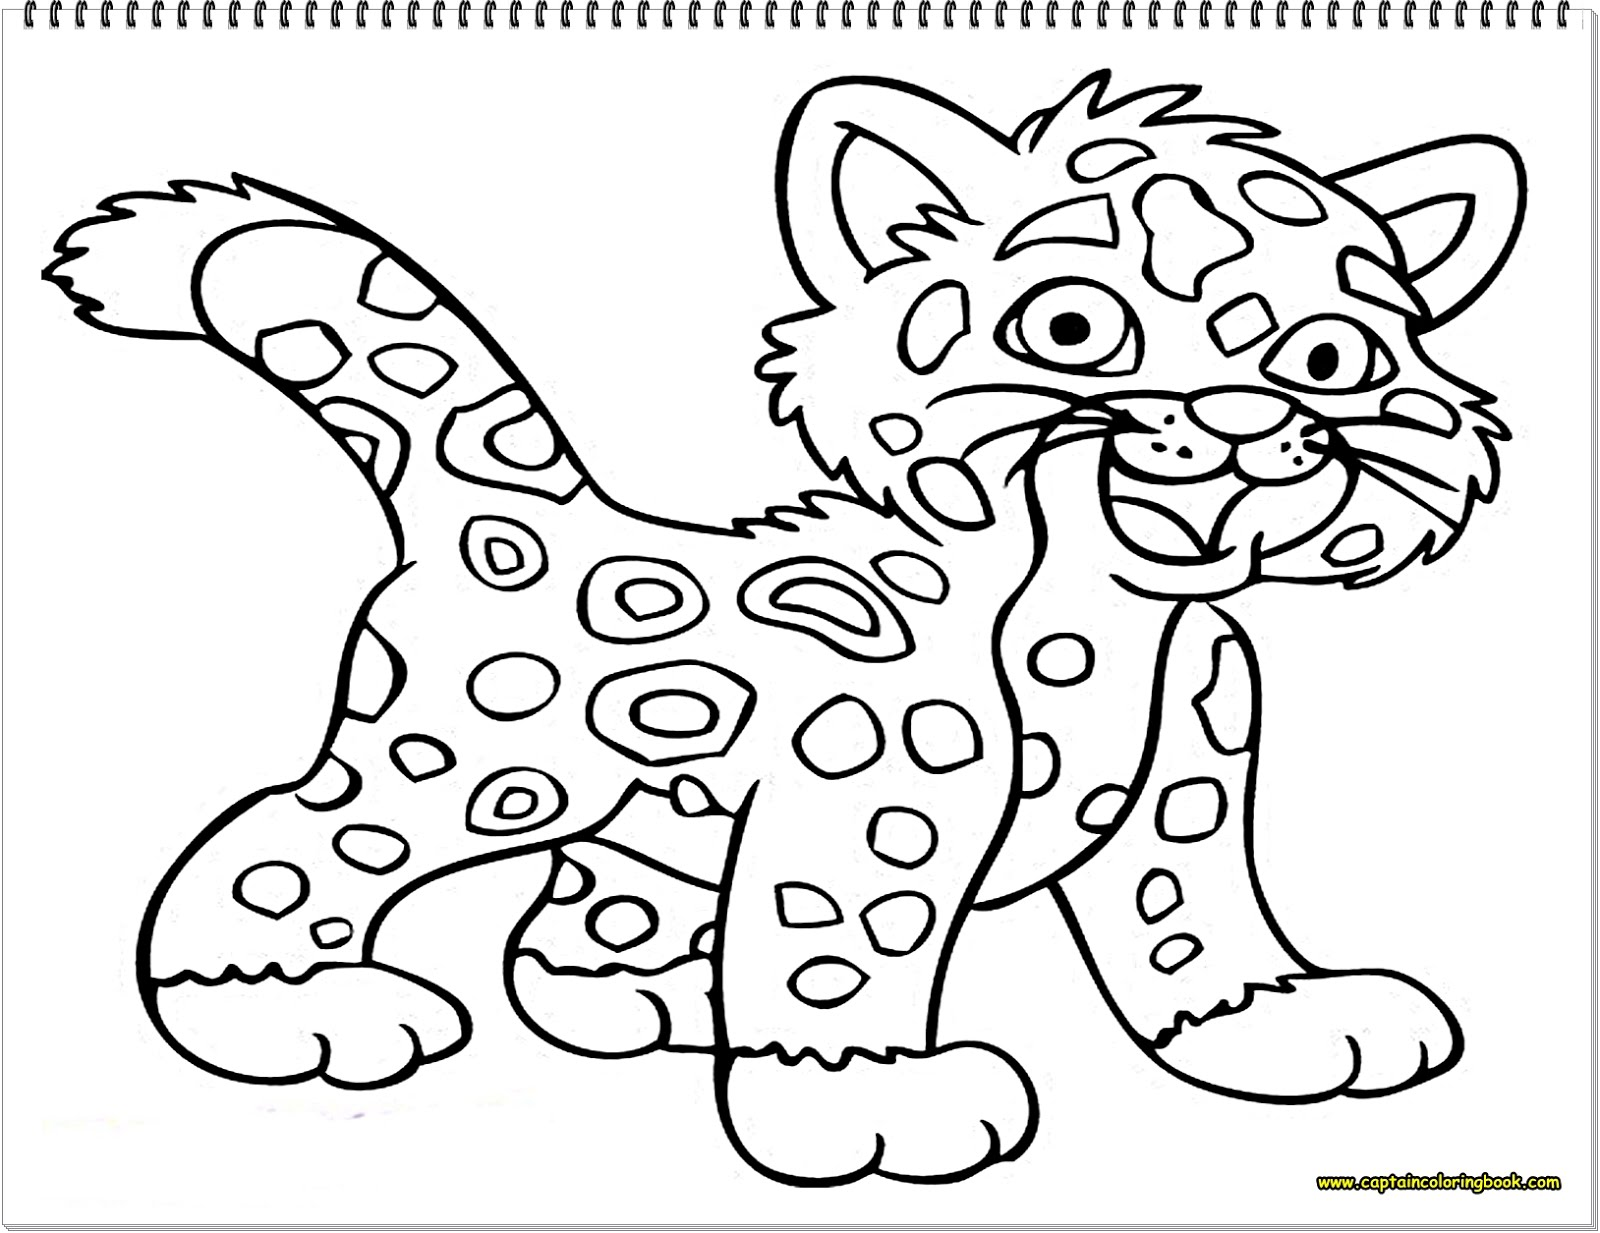 ANIMAL COLORING PAGES -HIGH QUALITY COLORING PAGES - Coloring Page